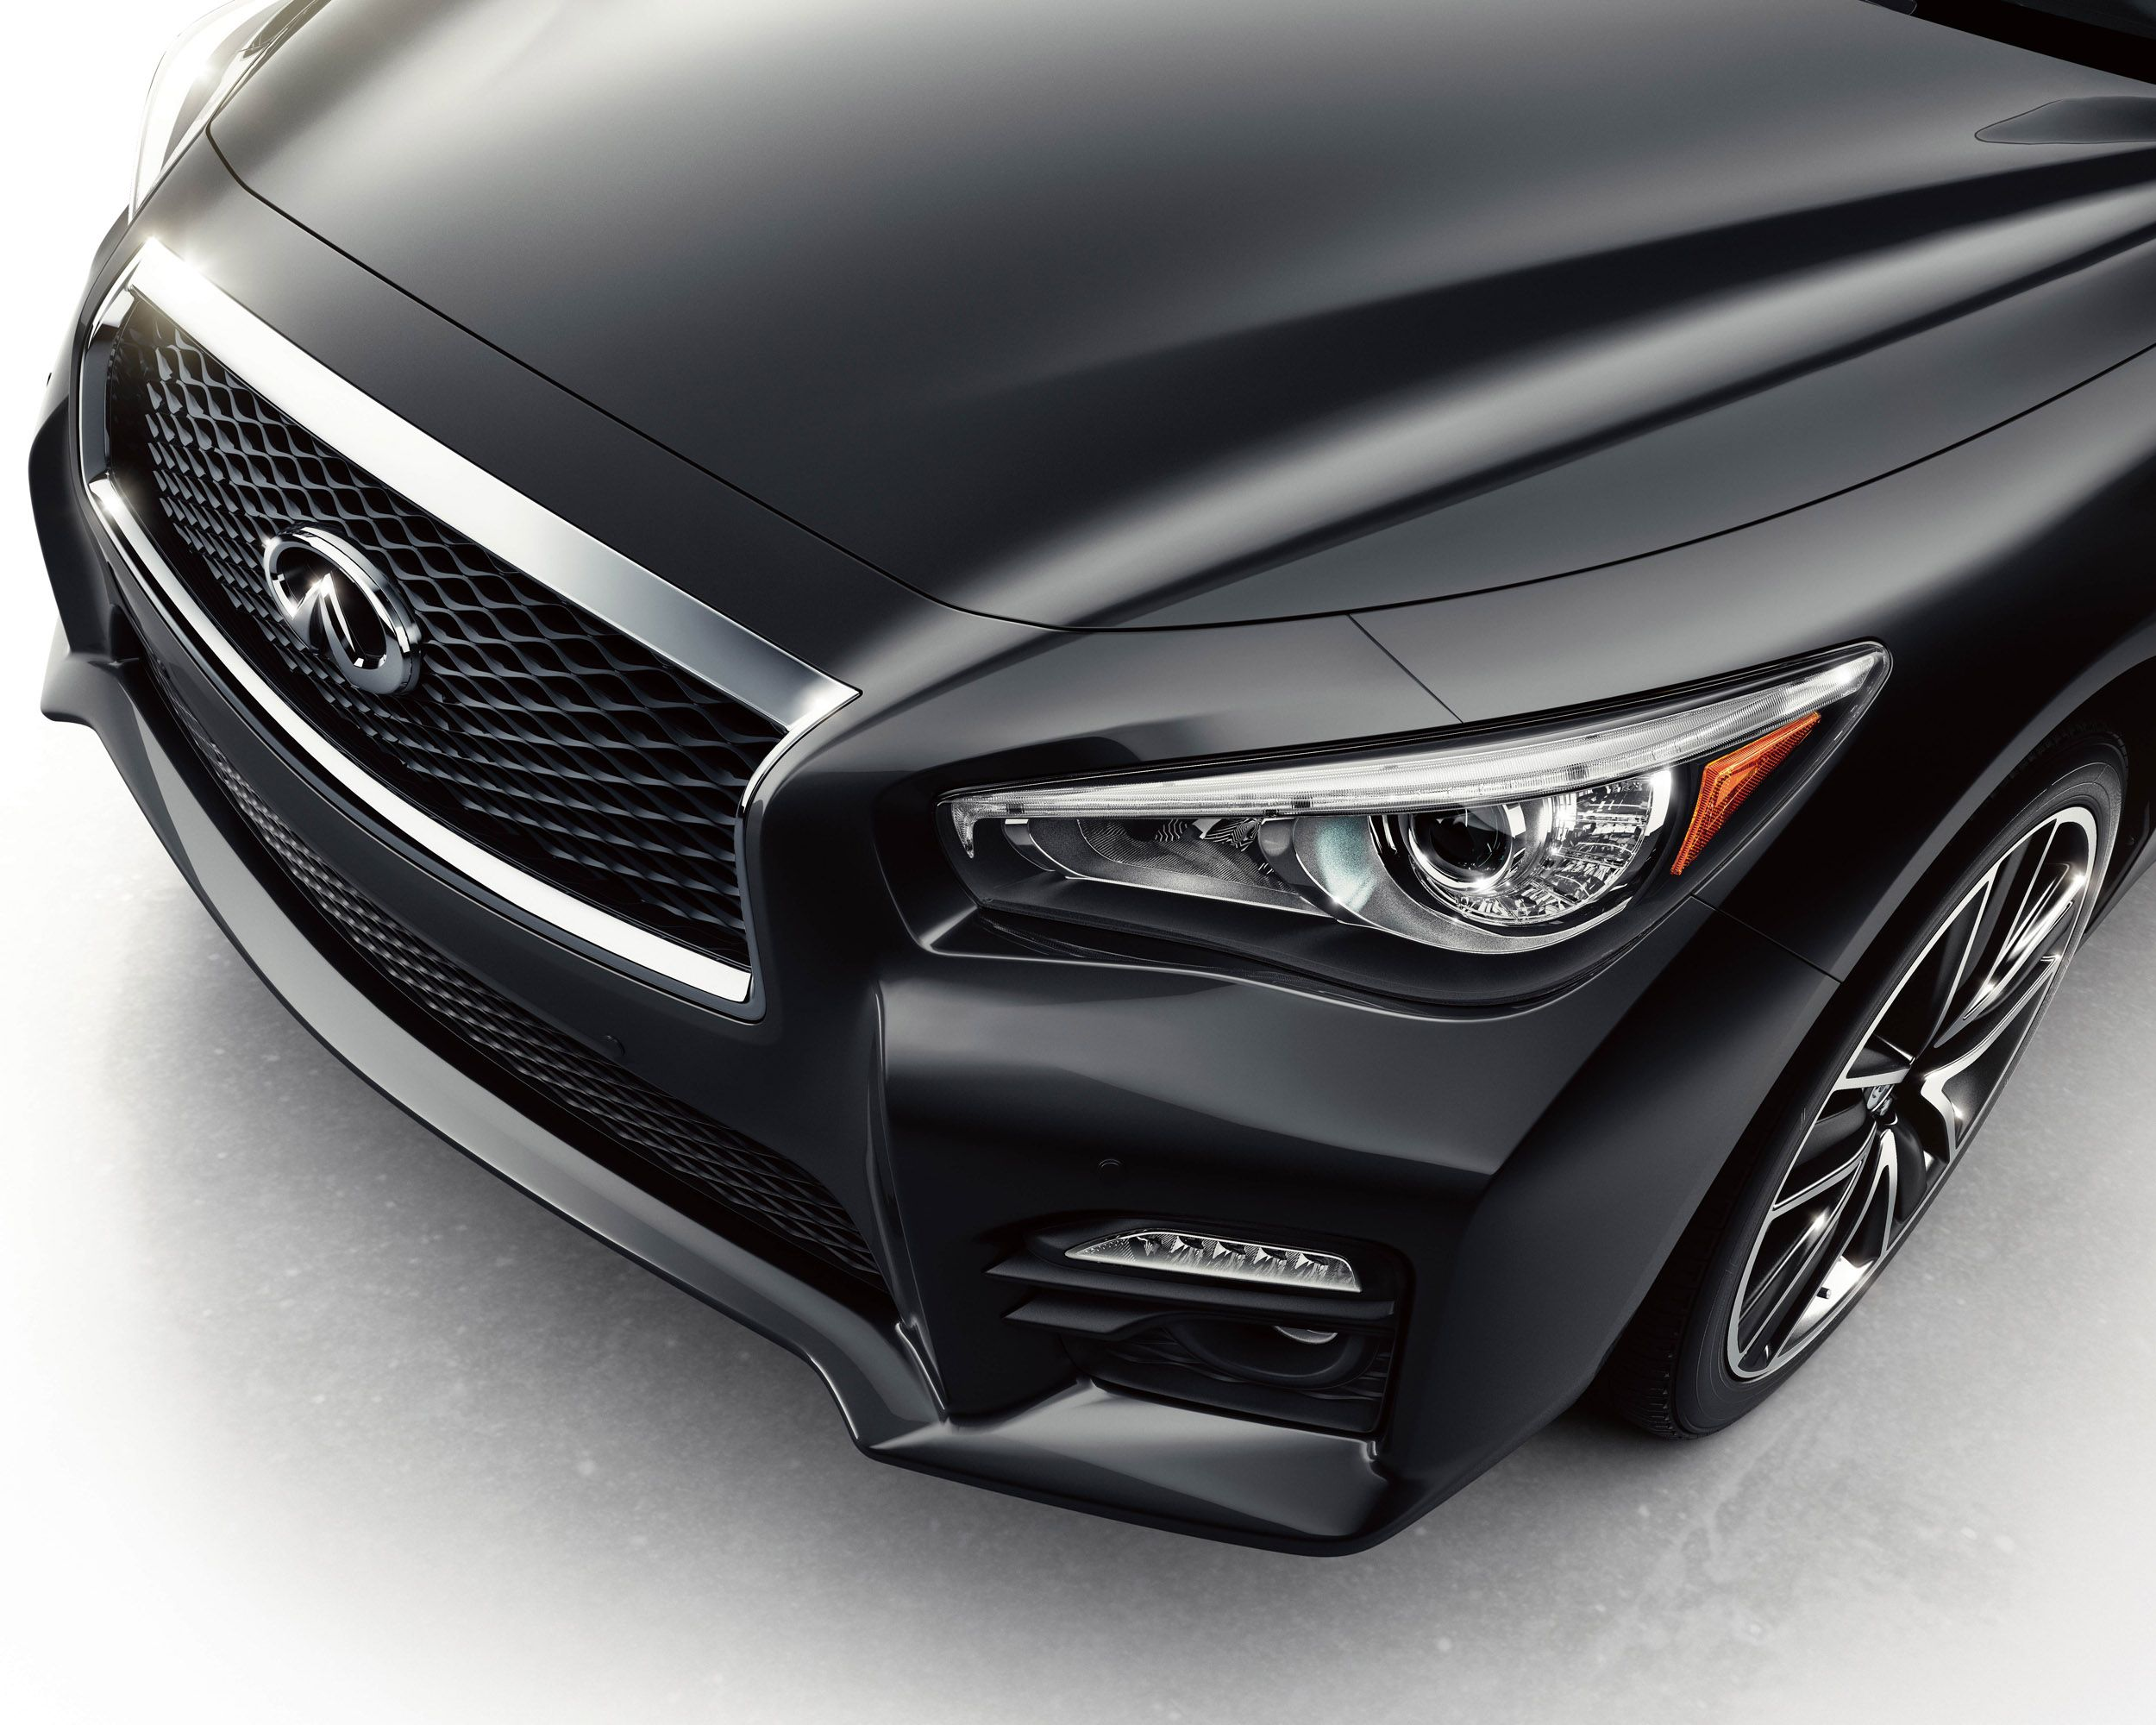 luxury europe executive automobile photo family design infinity rim infiniti sports en version wallpaper images netcarshow make vehicle wheel mid size sedan car exterior land automotive netcar